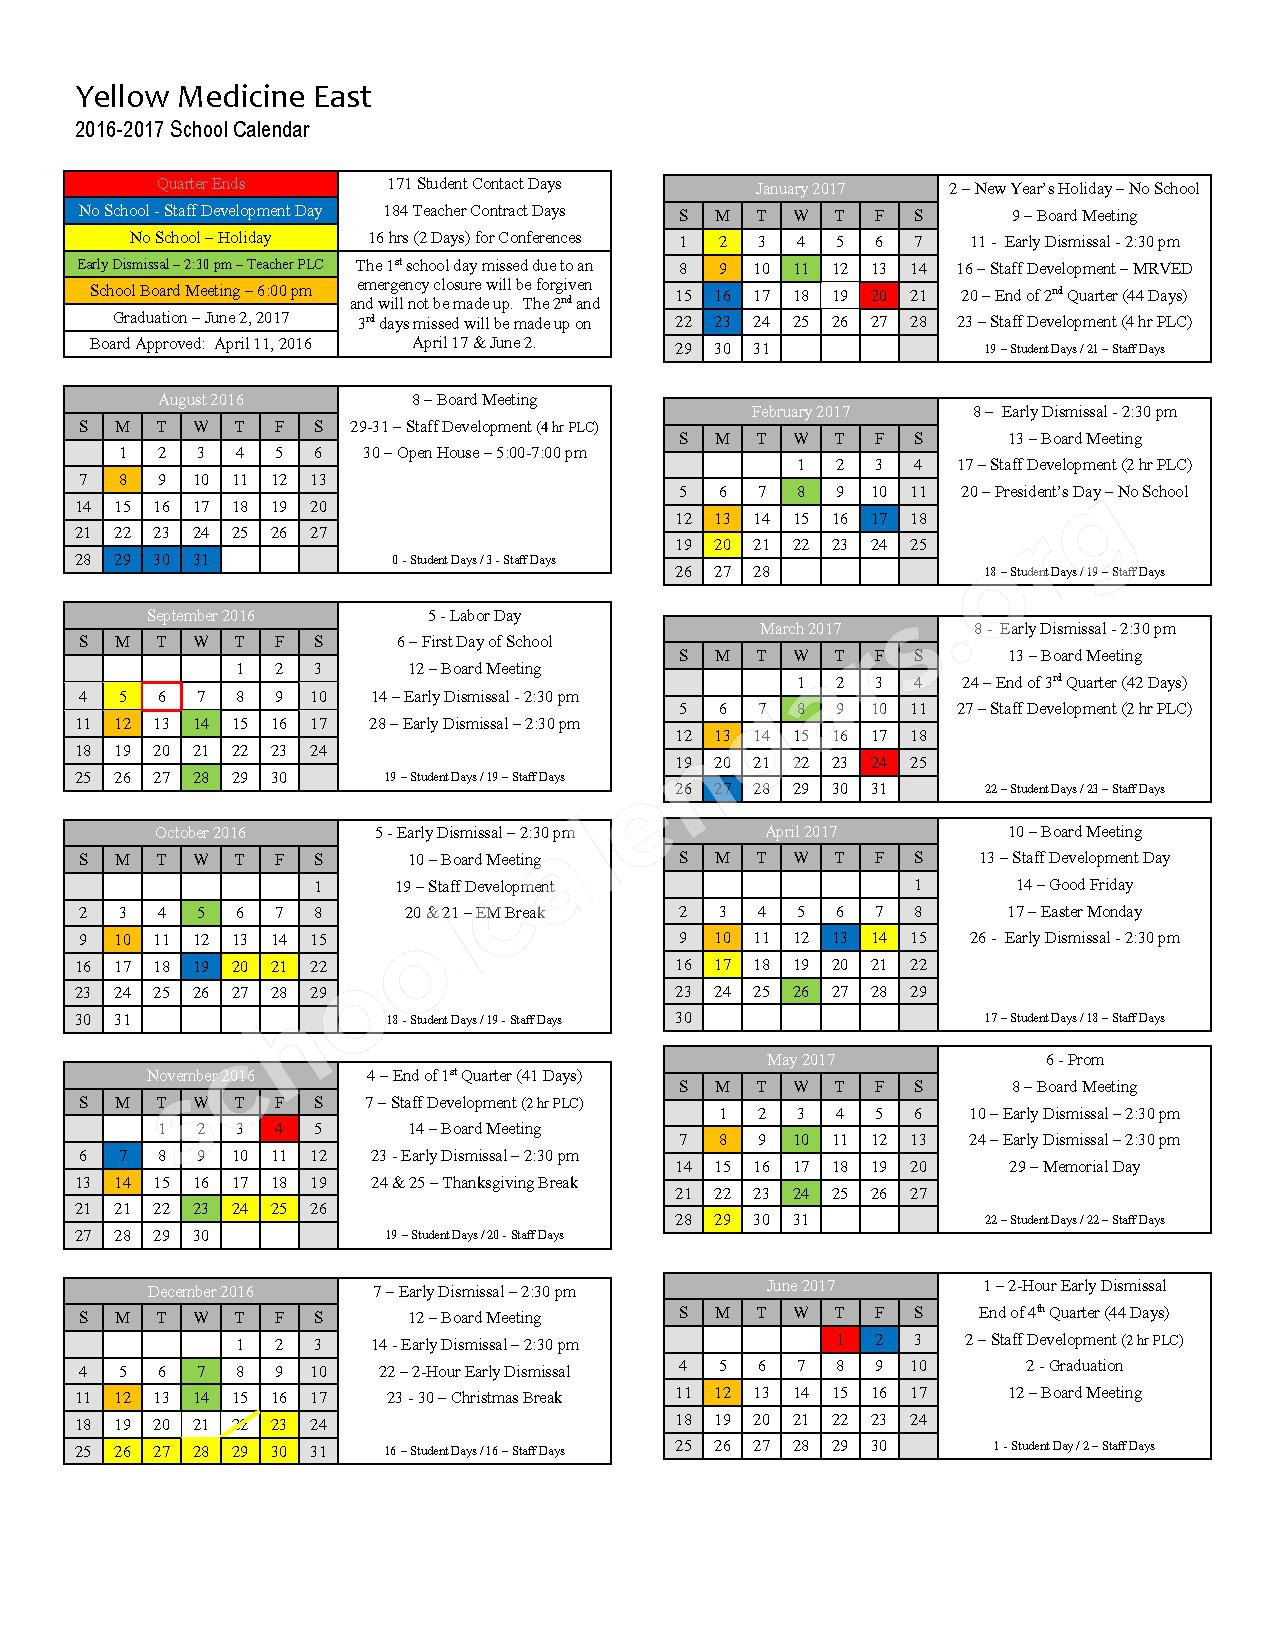 2016 - 2017 School Calendar – Yellow Medicine East – page 1